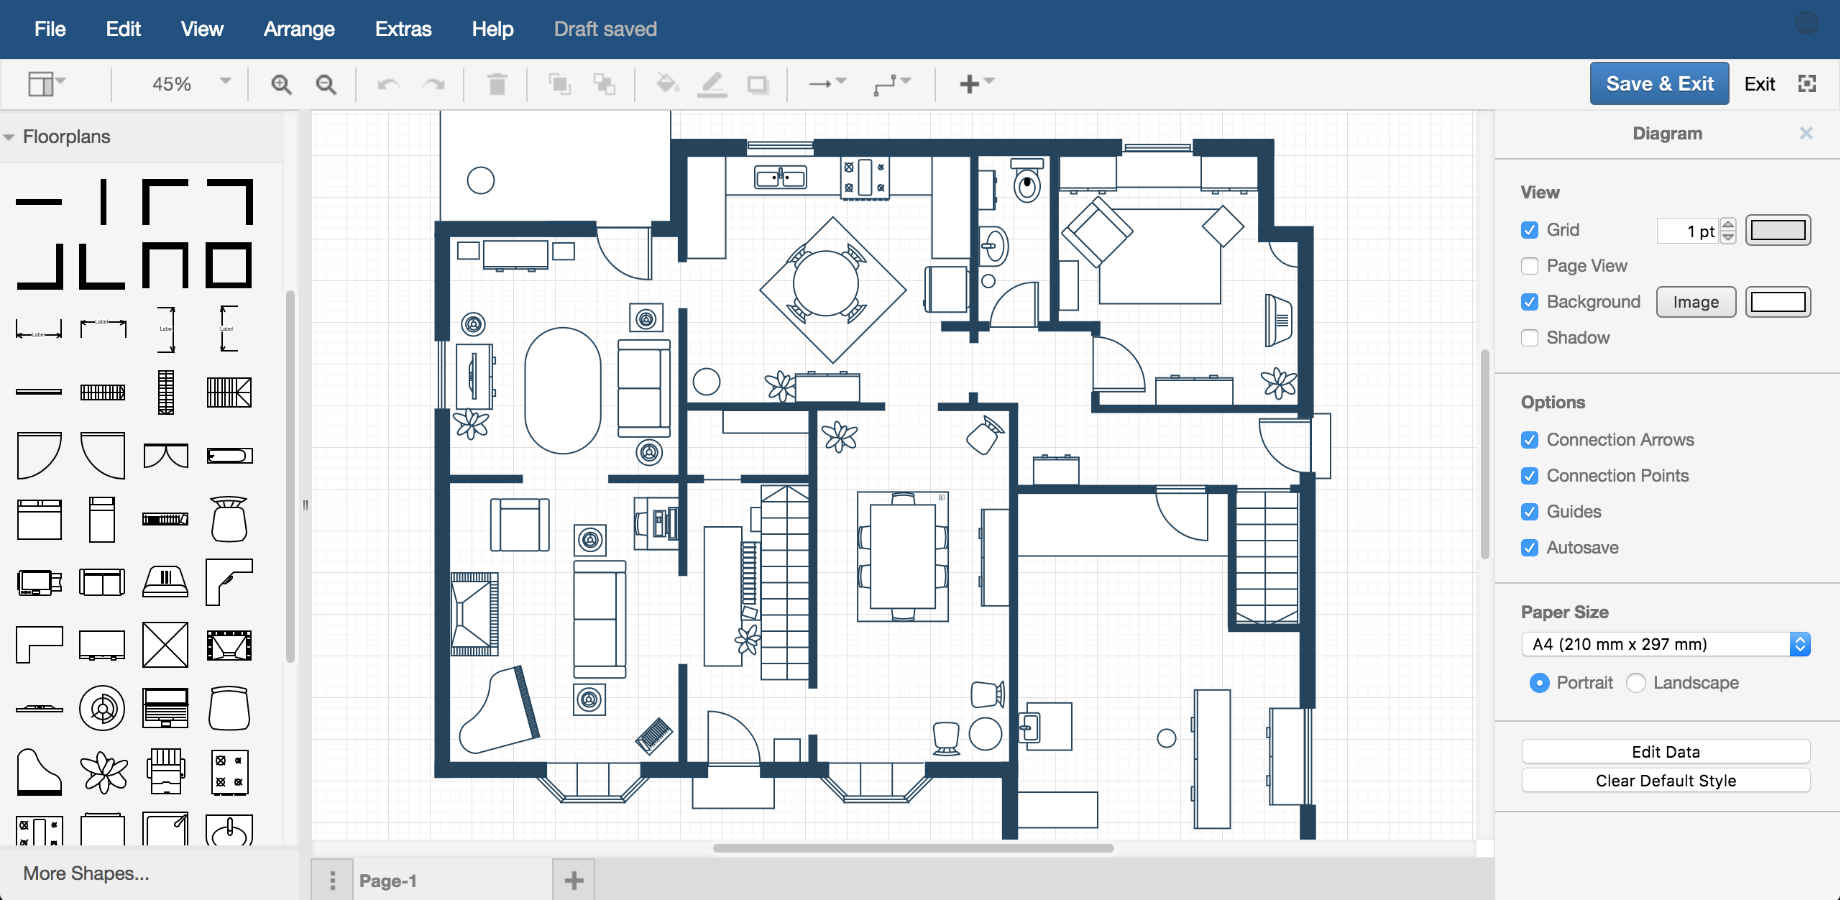 Examples Drawio Plc Schematic Symbols Chart Get Free Image About Wiring Diagram Use Floor Plans To Visually Organize Your Office Home Or Conference Space Provides You With Many Templates That Can Quickly Draw Up